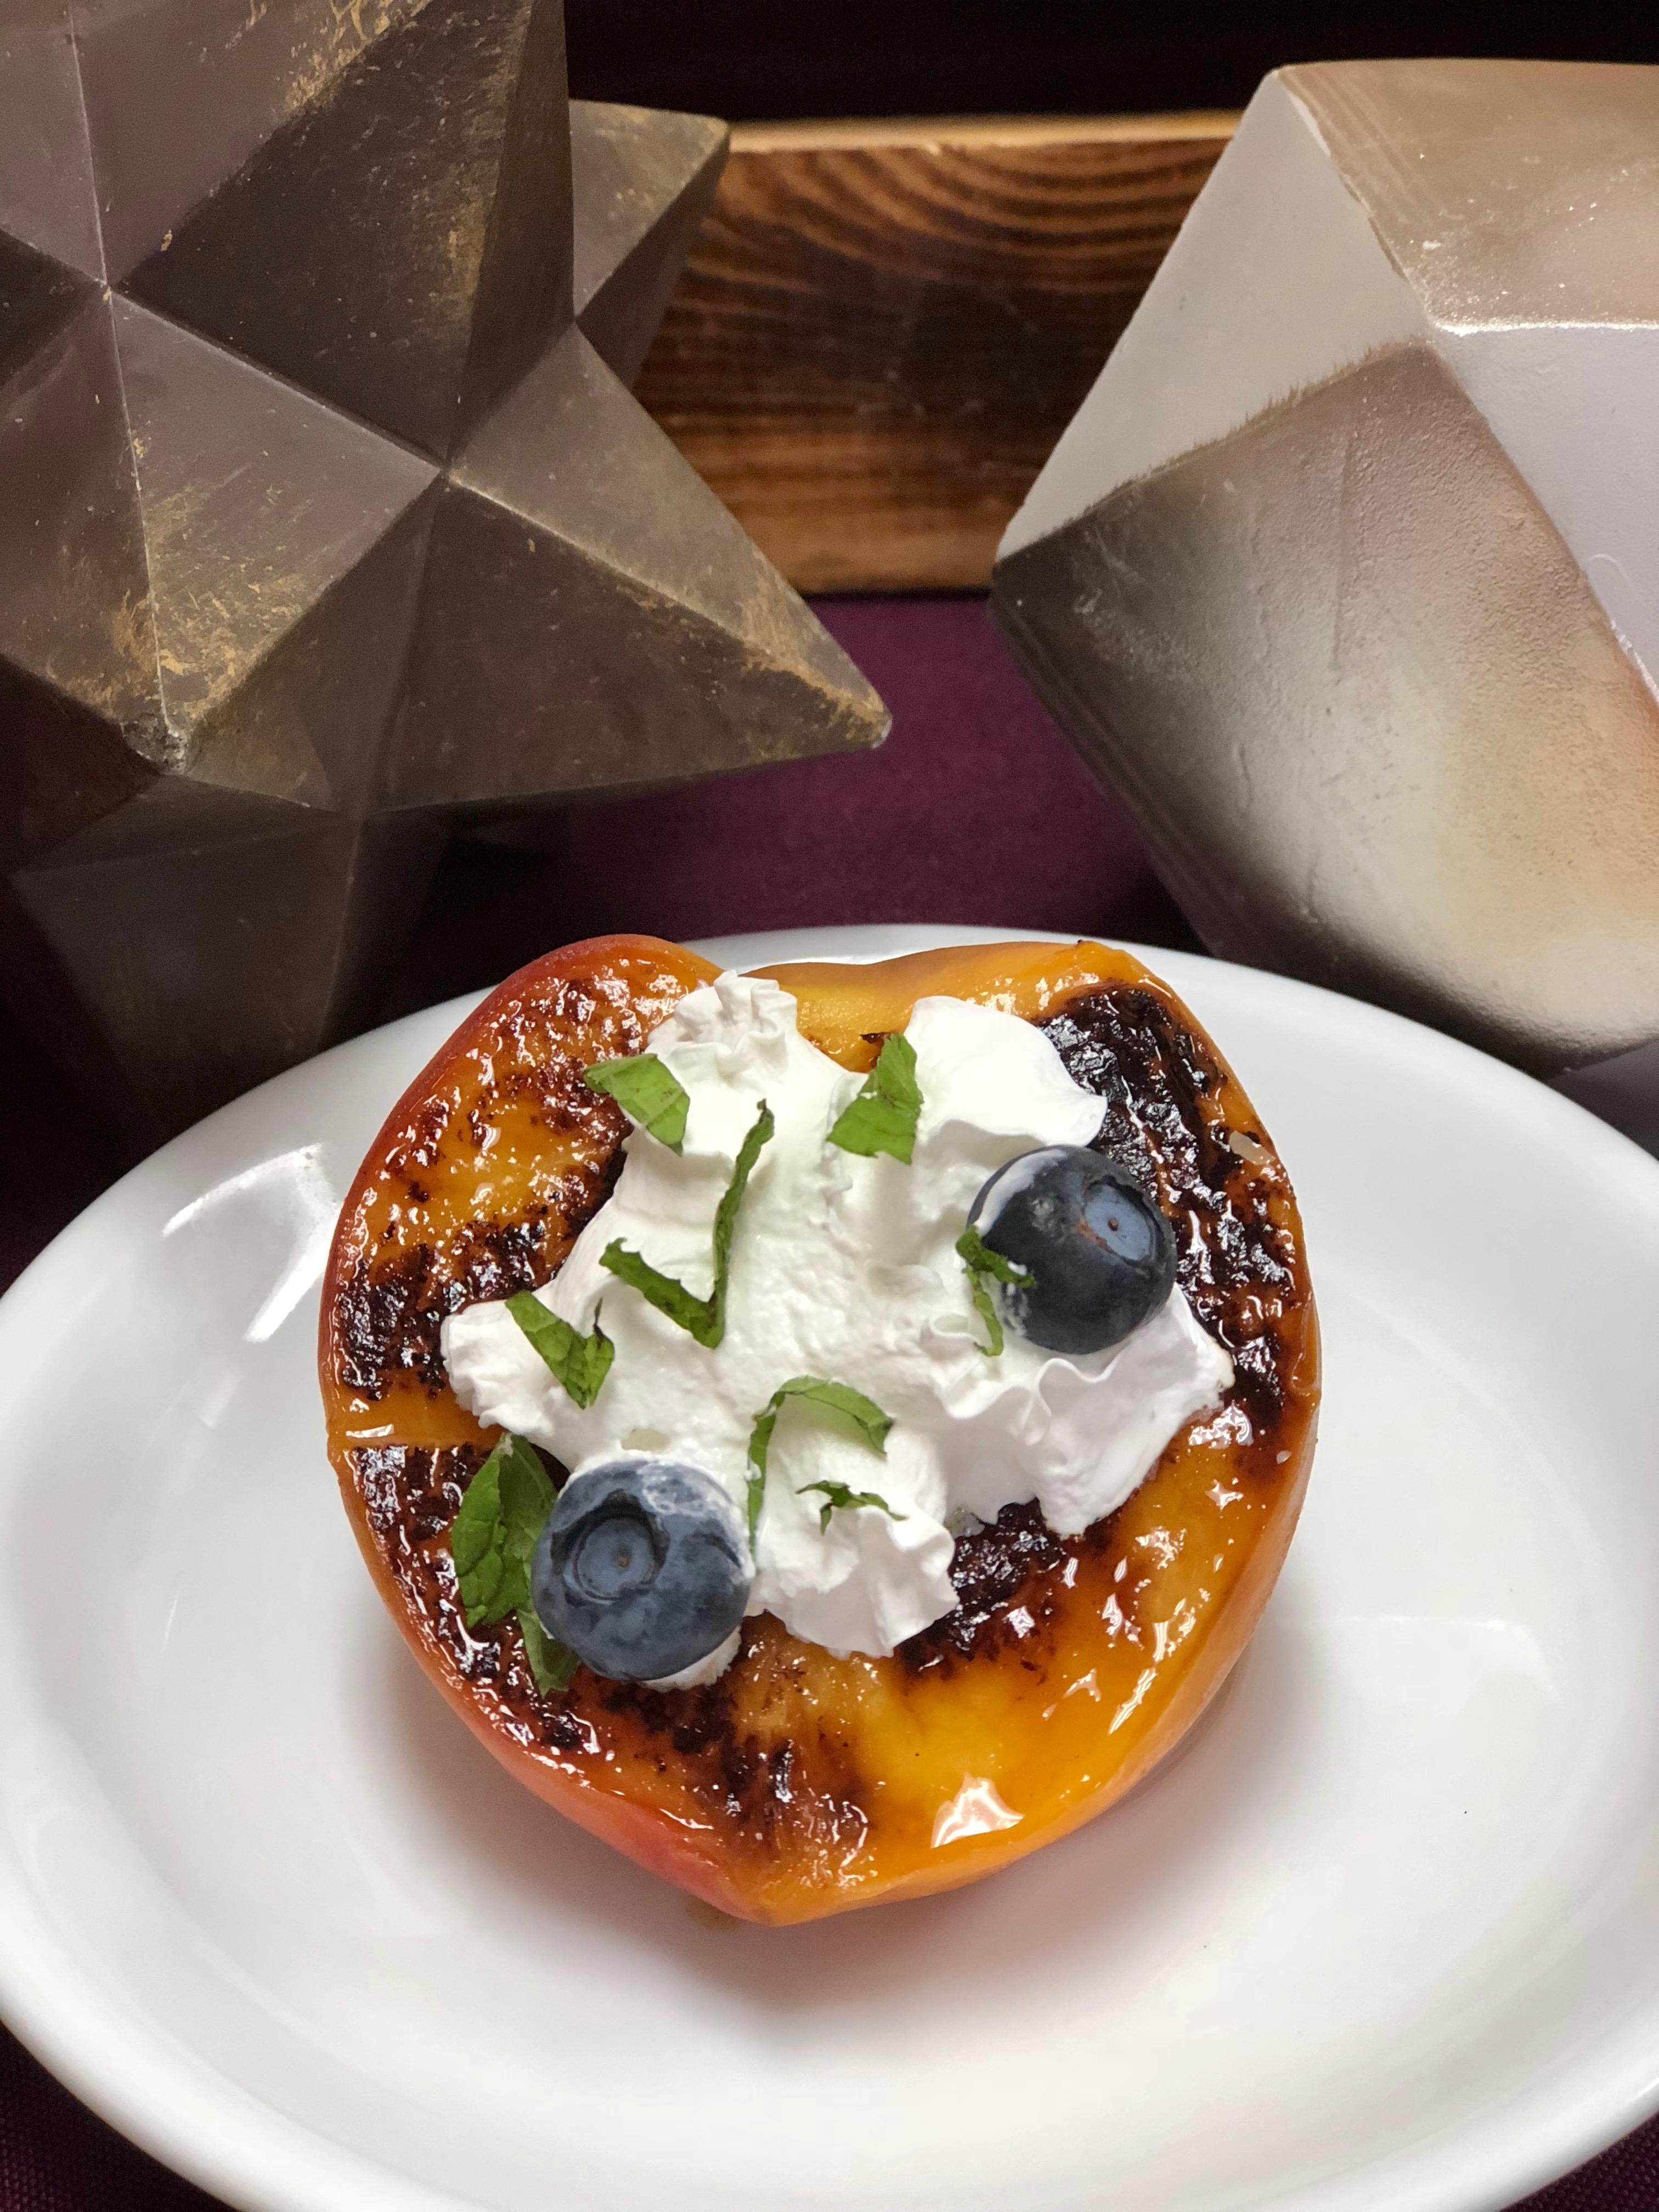 Grilled Peach with Whipped Cream, Blueberries, and Mint